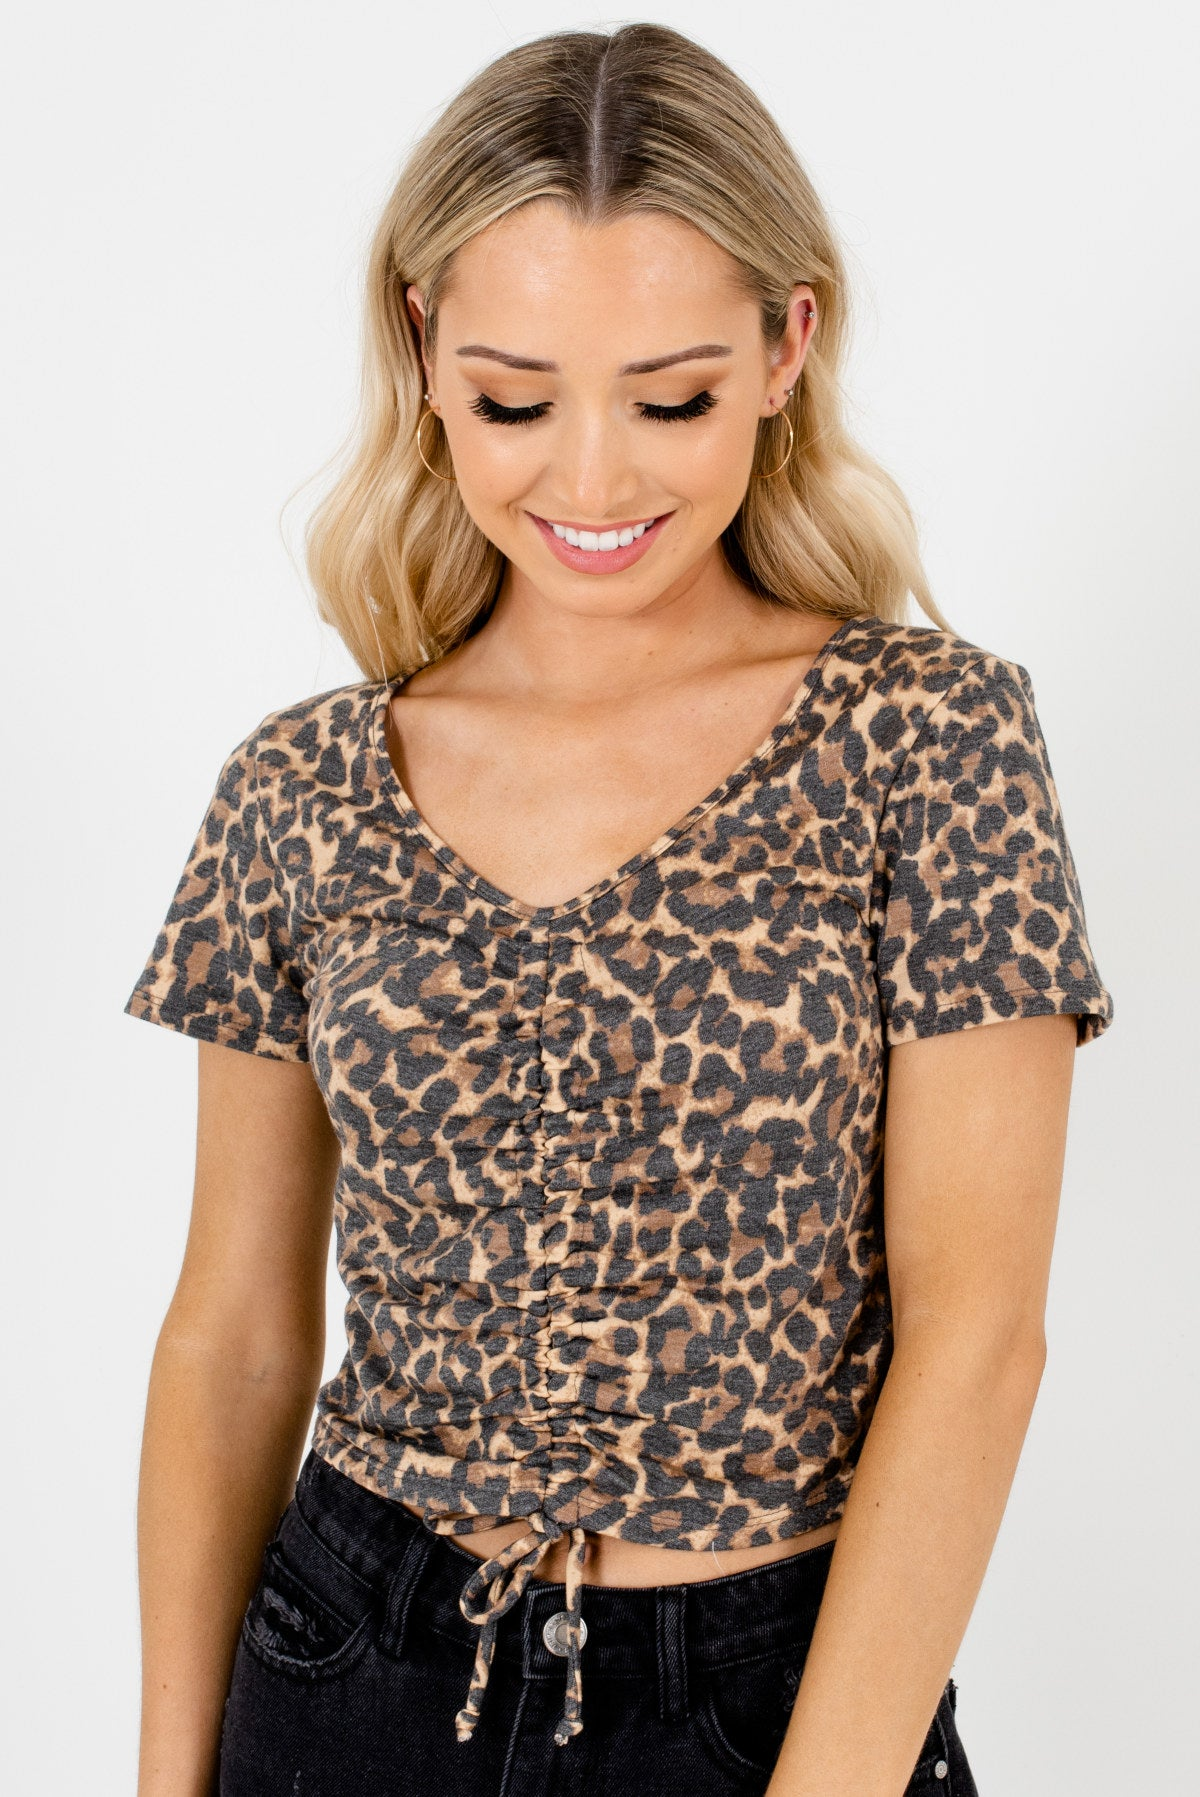 Beige Brown Leopard Print Patterned Boutique Tops for Women